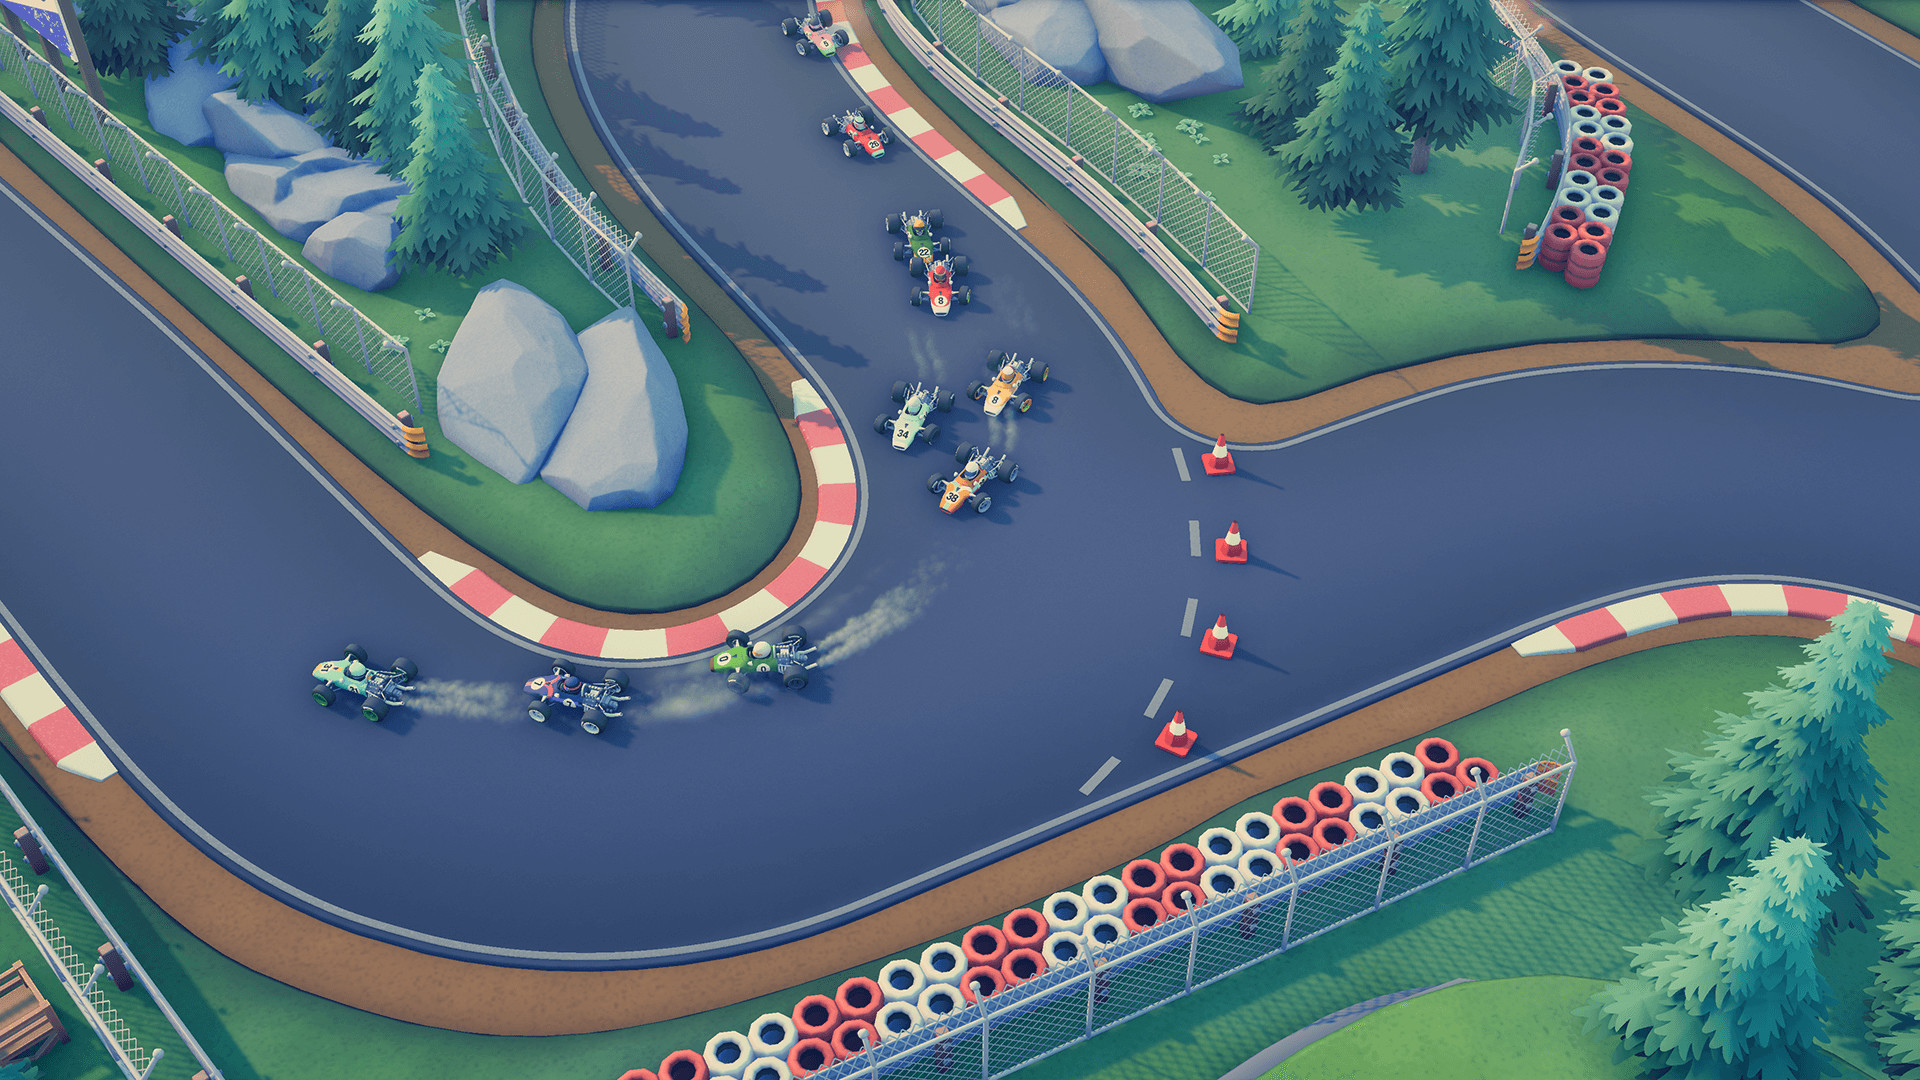 A knot of grand prix cars, belching exhaust, negotiate a hairpin corner